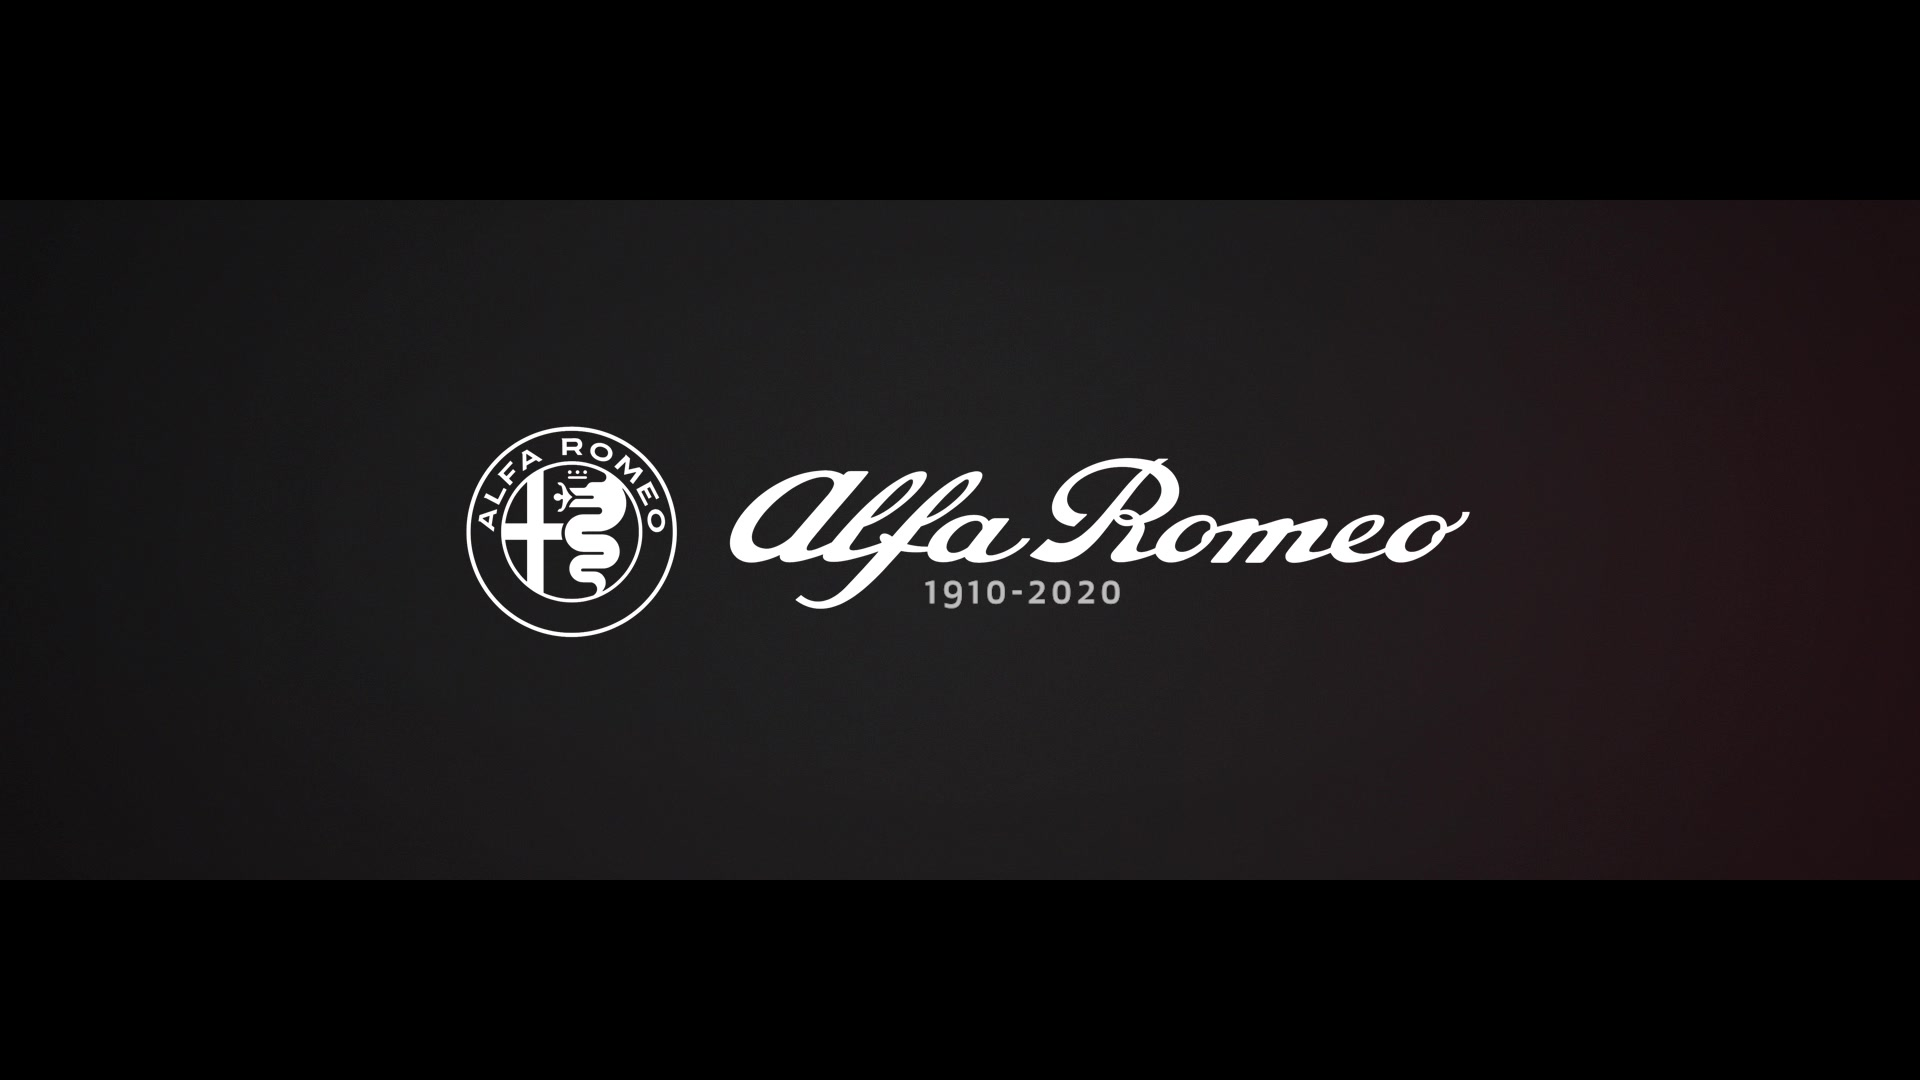 A Historic Celebration: 110 Years of Alfa Romeo